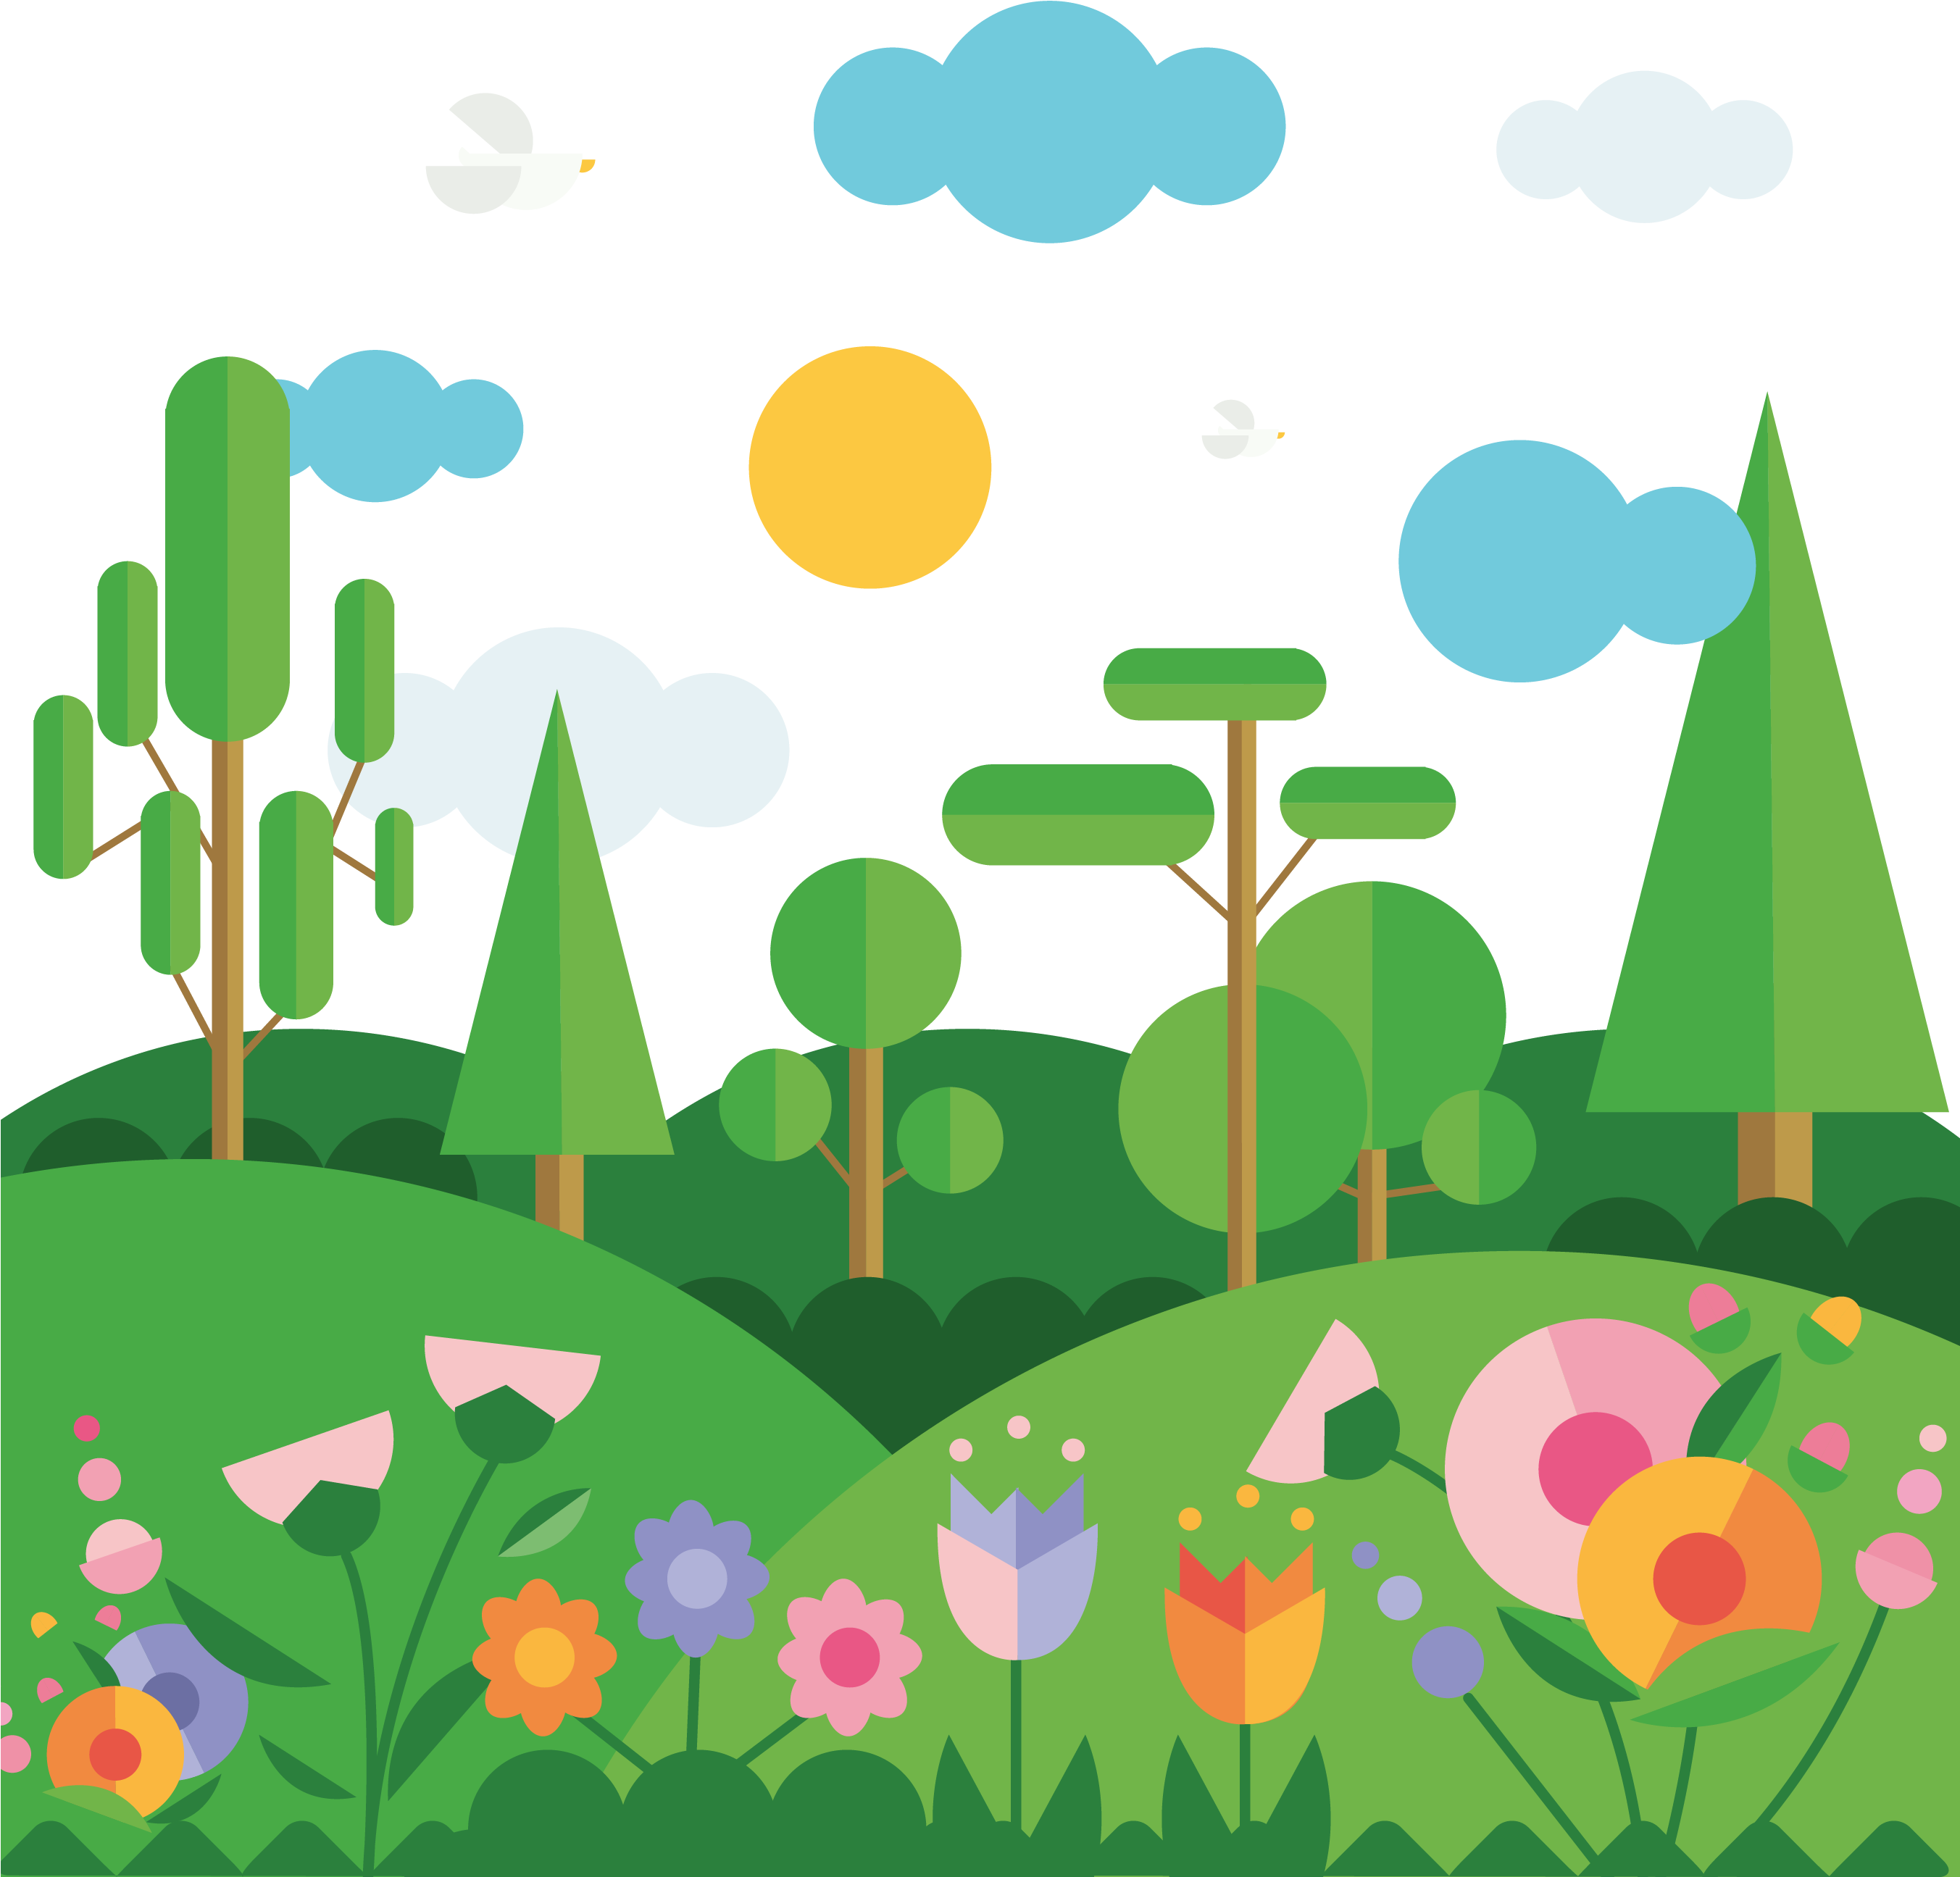 Landscaping clipart high resolution.